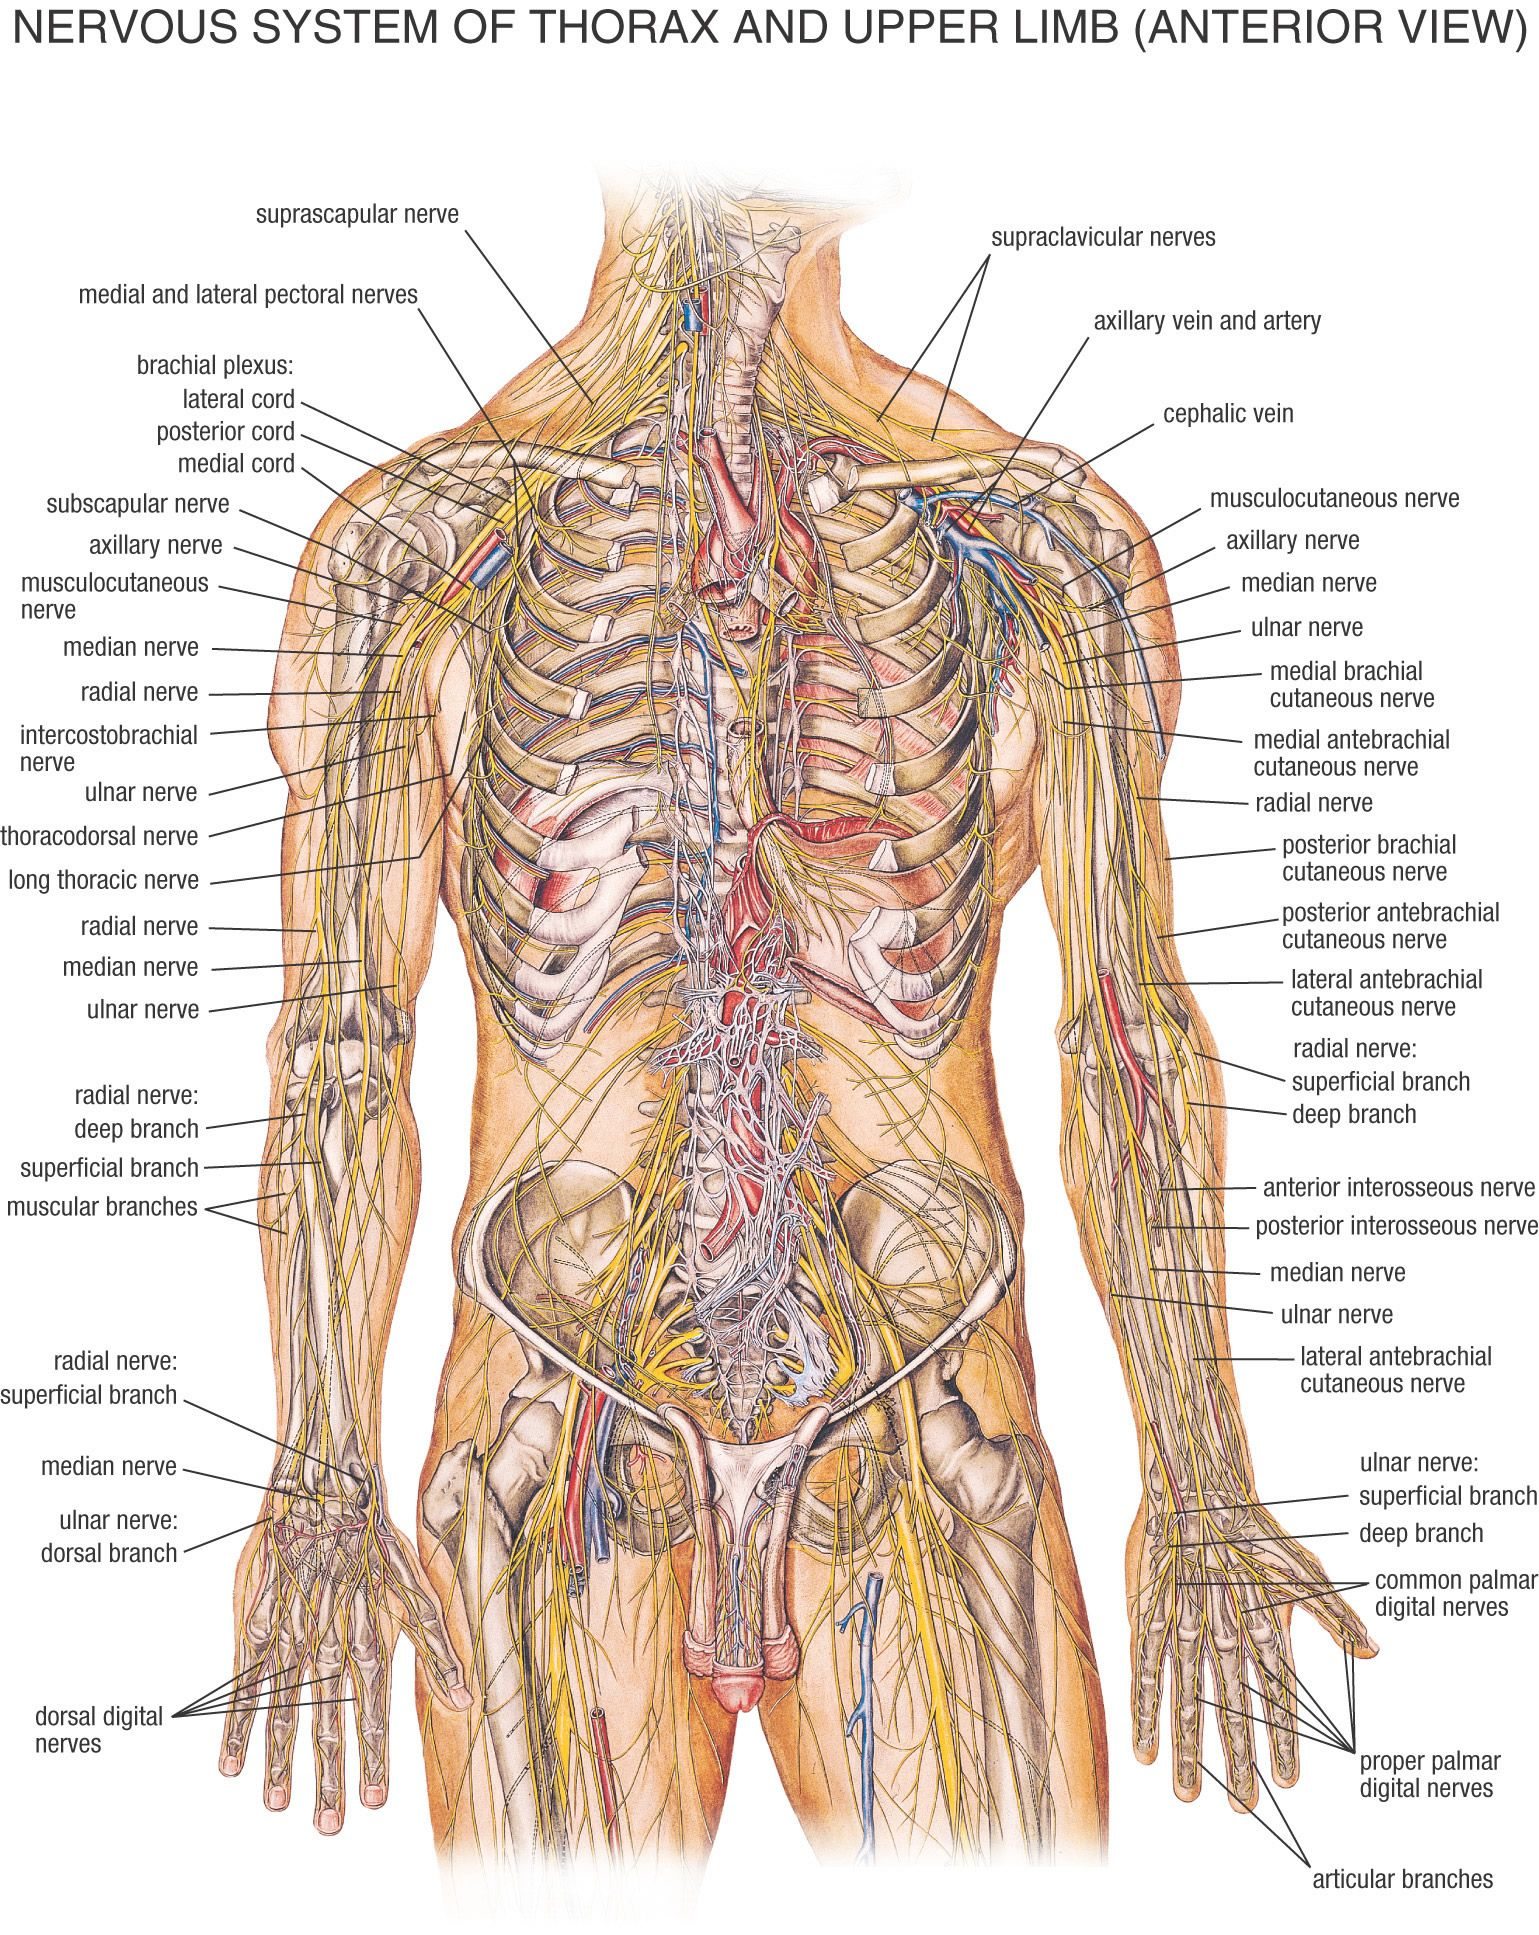 Nervous System | School | Pinterest | Nervous System, Anatomy and ...